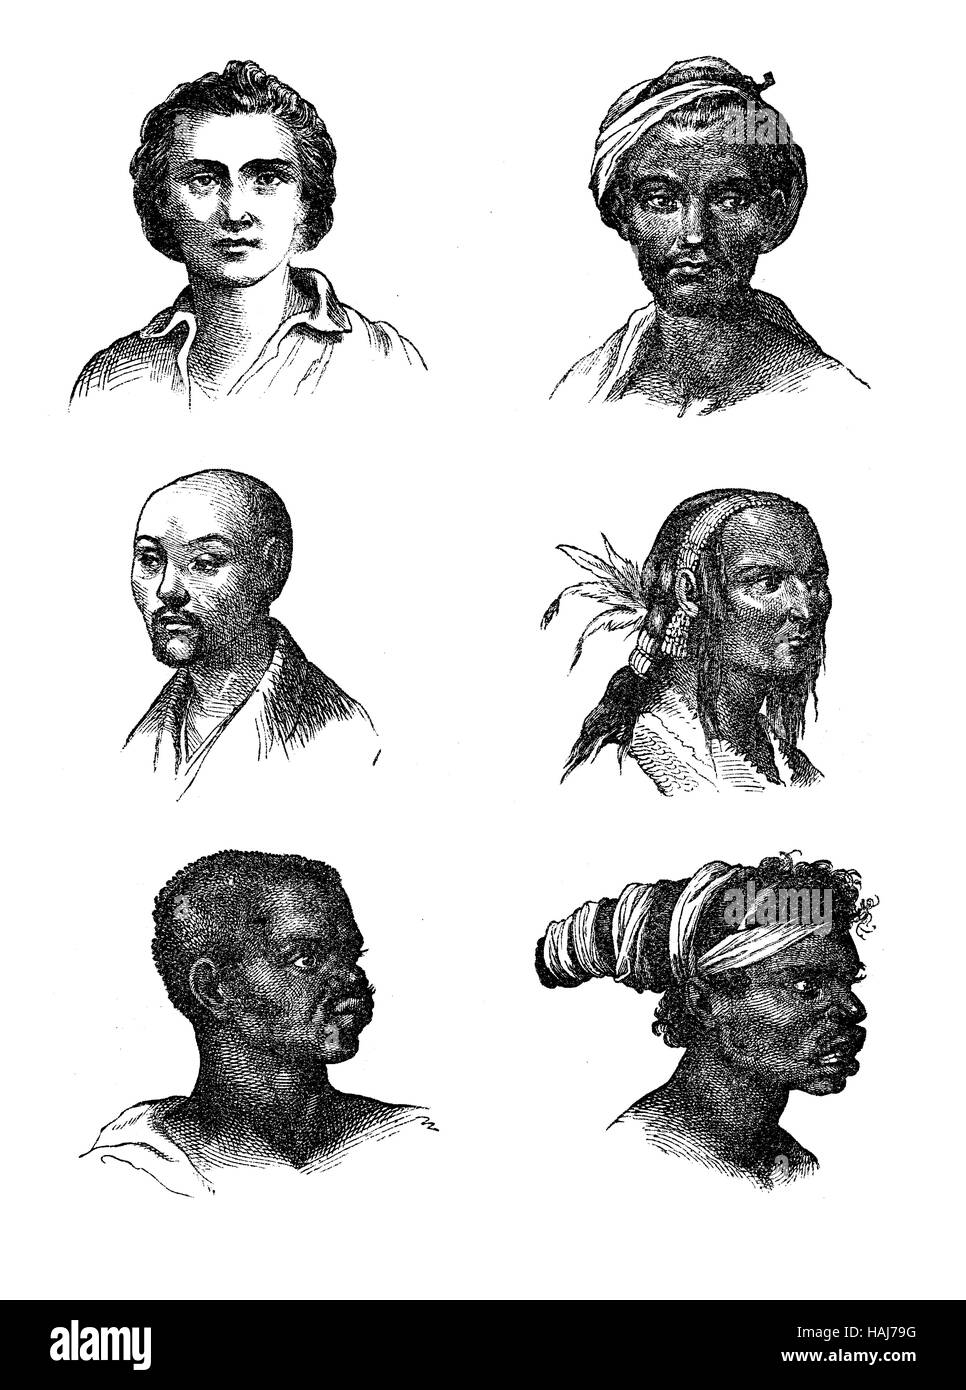 Vintage engraving representing the human races somatic diversity, representation of XIX century - Stock Image